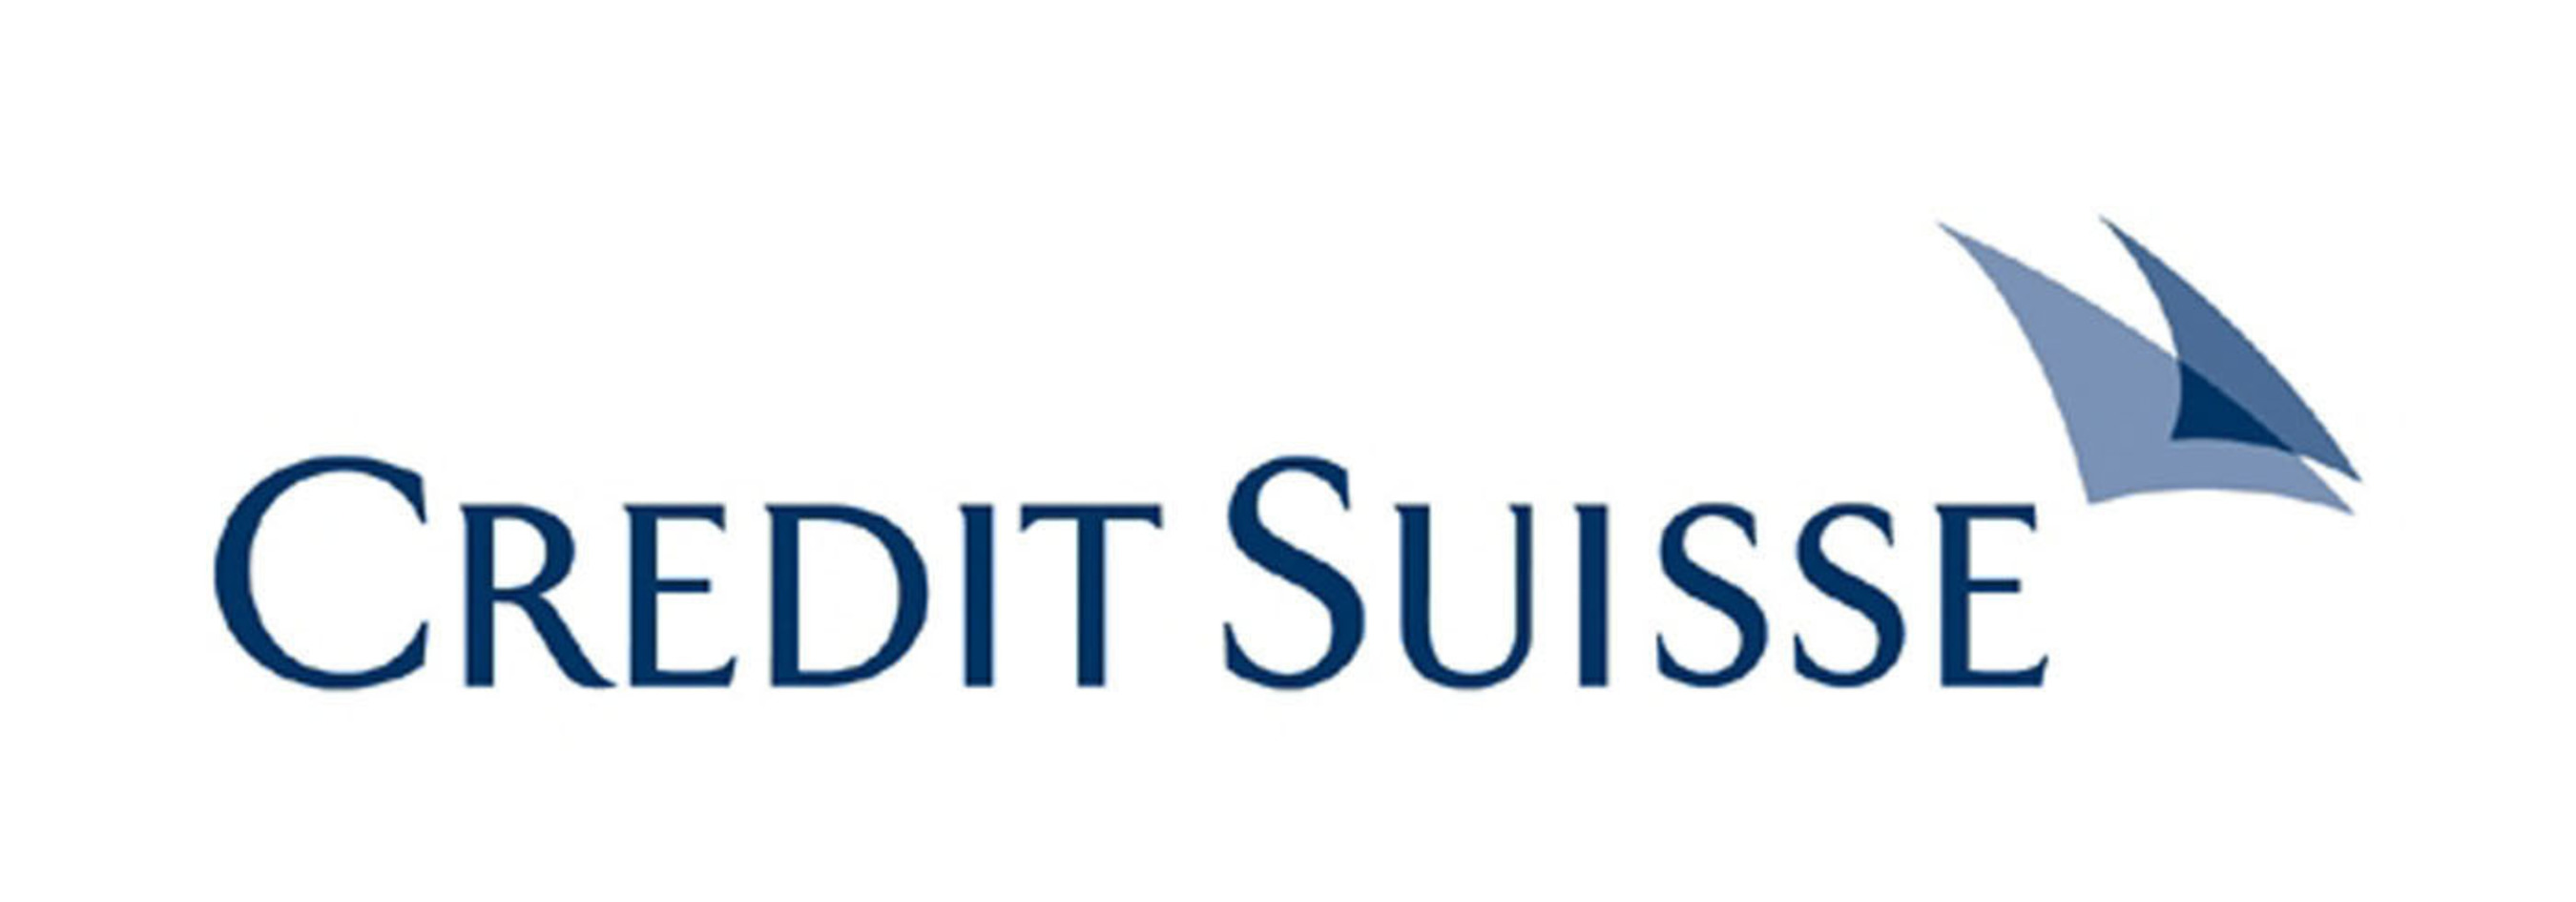 Credit suisse announces coupon payments on its credit suisse x credit suisse logo biocorpaavc Choice Image